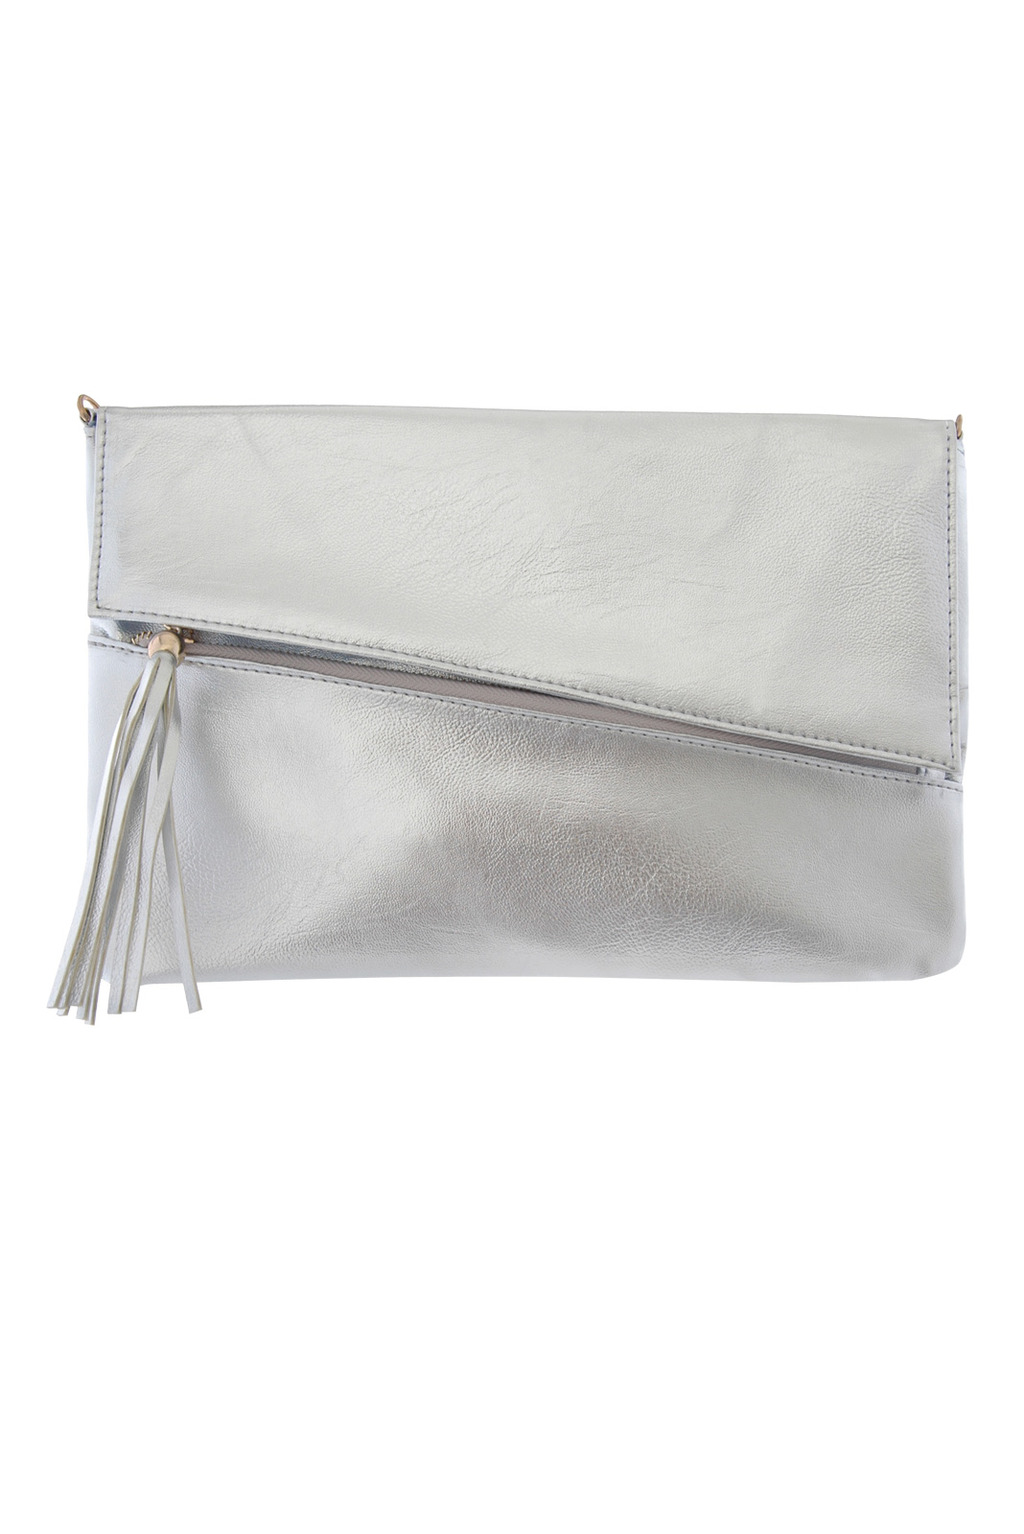 Metallic Fold Over Clutch - predominant colour: silver; occasions: casual, evening, occasion; style: clutch; length: hand carry; size: standard; material: faux leather; pattern: plain; finish: metallic; season: s/s 2013